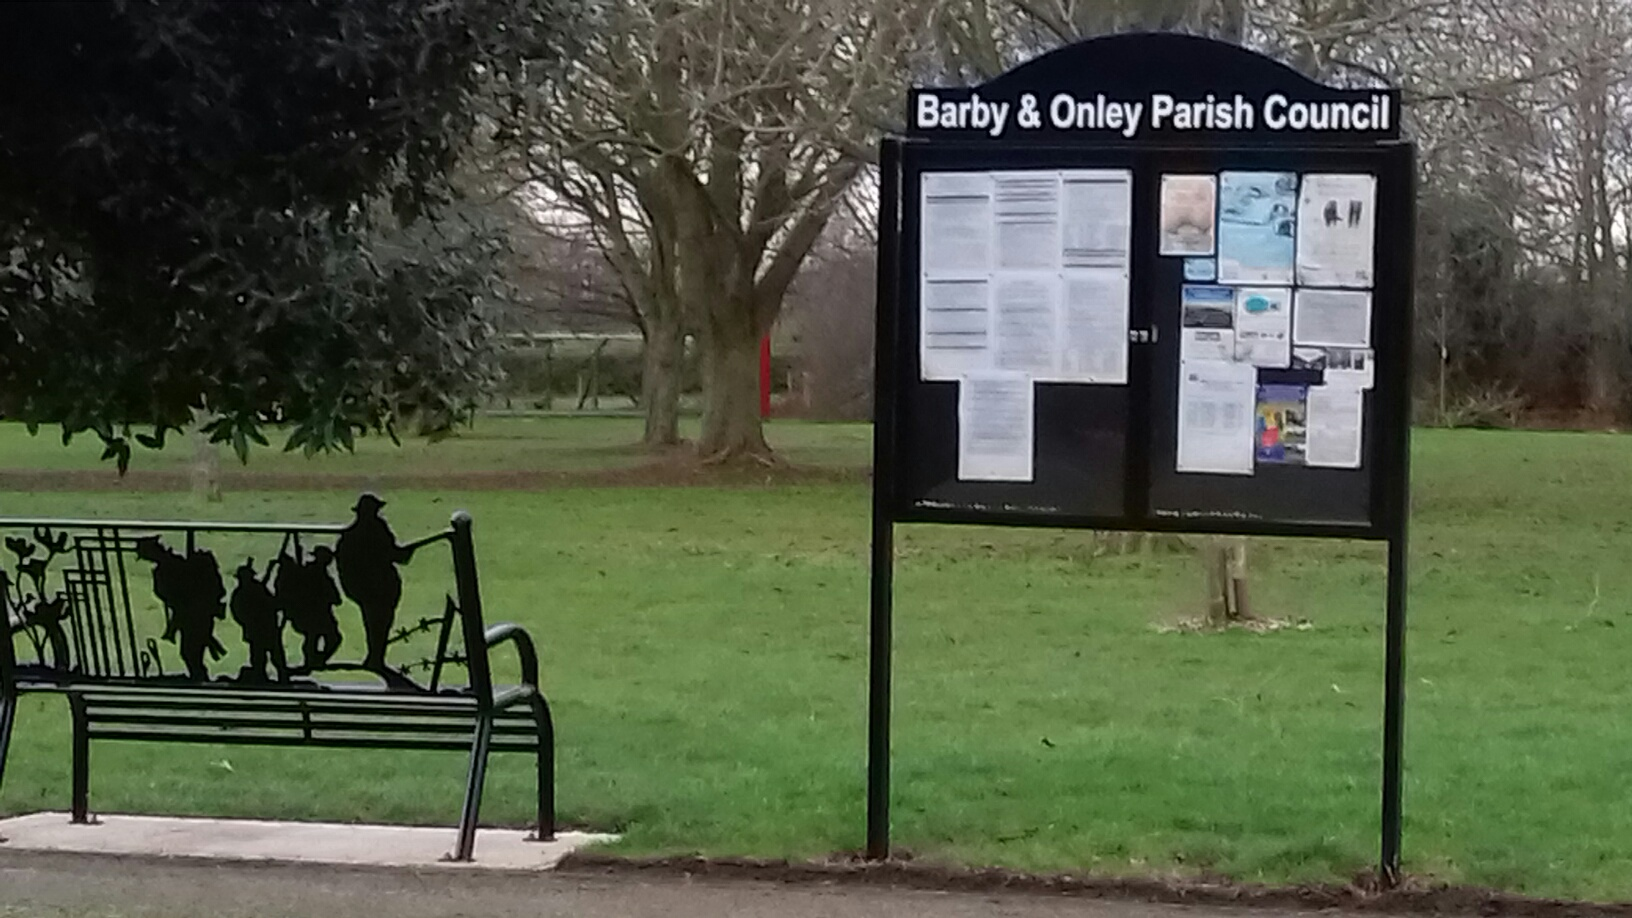 Memorial Bench and New Notice Board at Onley February 2019